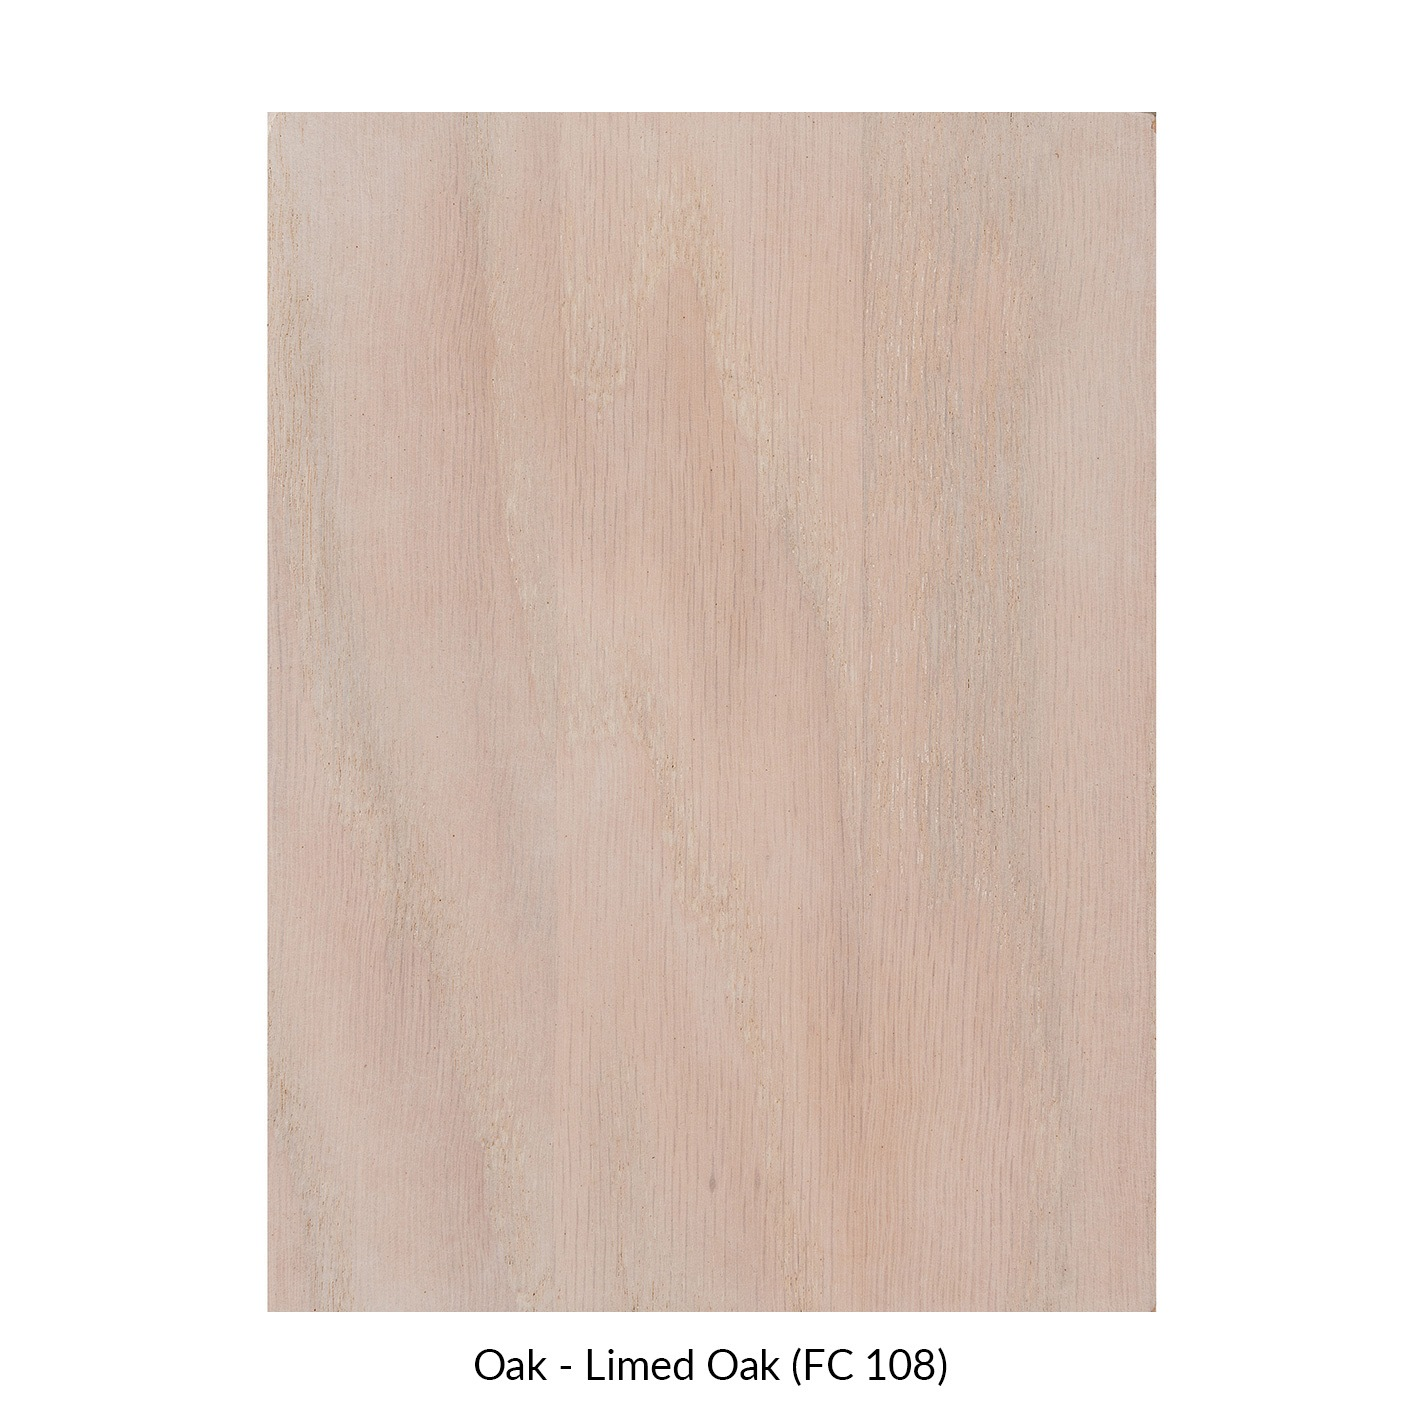 spectrum-oak-limed-oak-fc-108.jpg